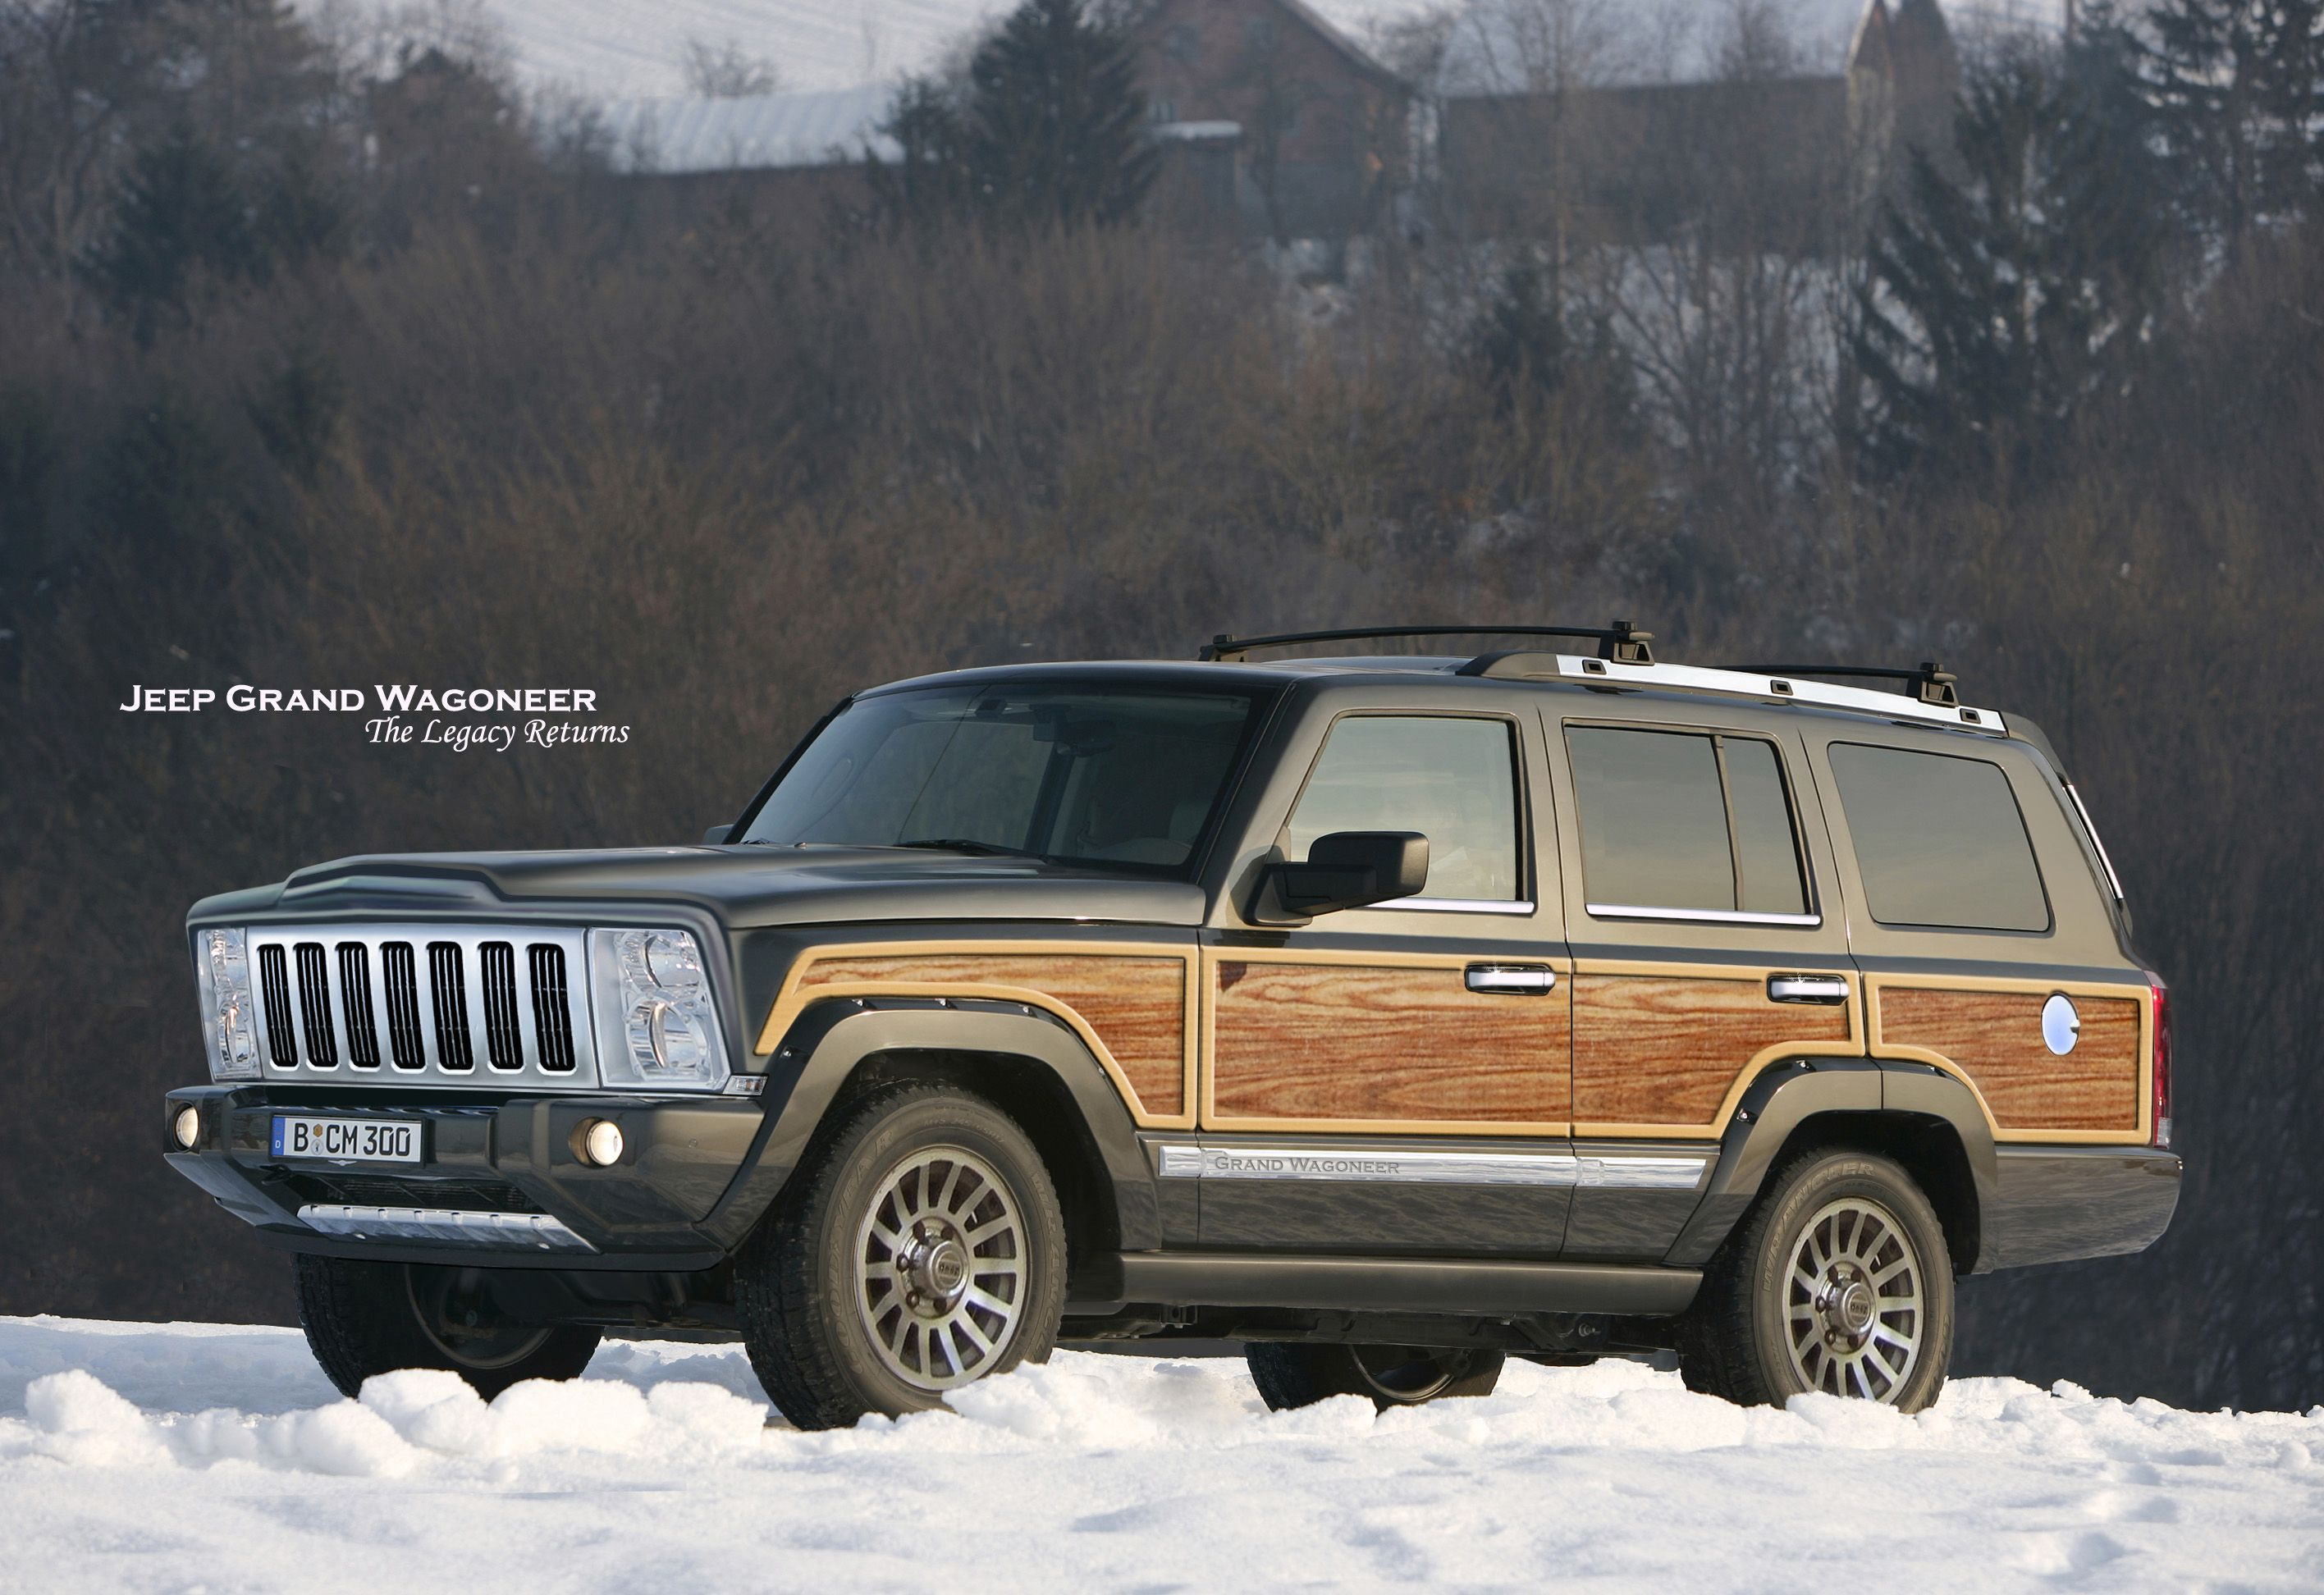 Update New Jeep Grand Wagoneer Confirmed By Jeep Ceo Jeep